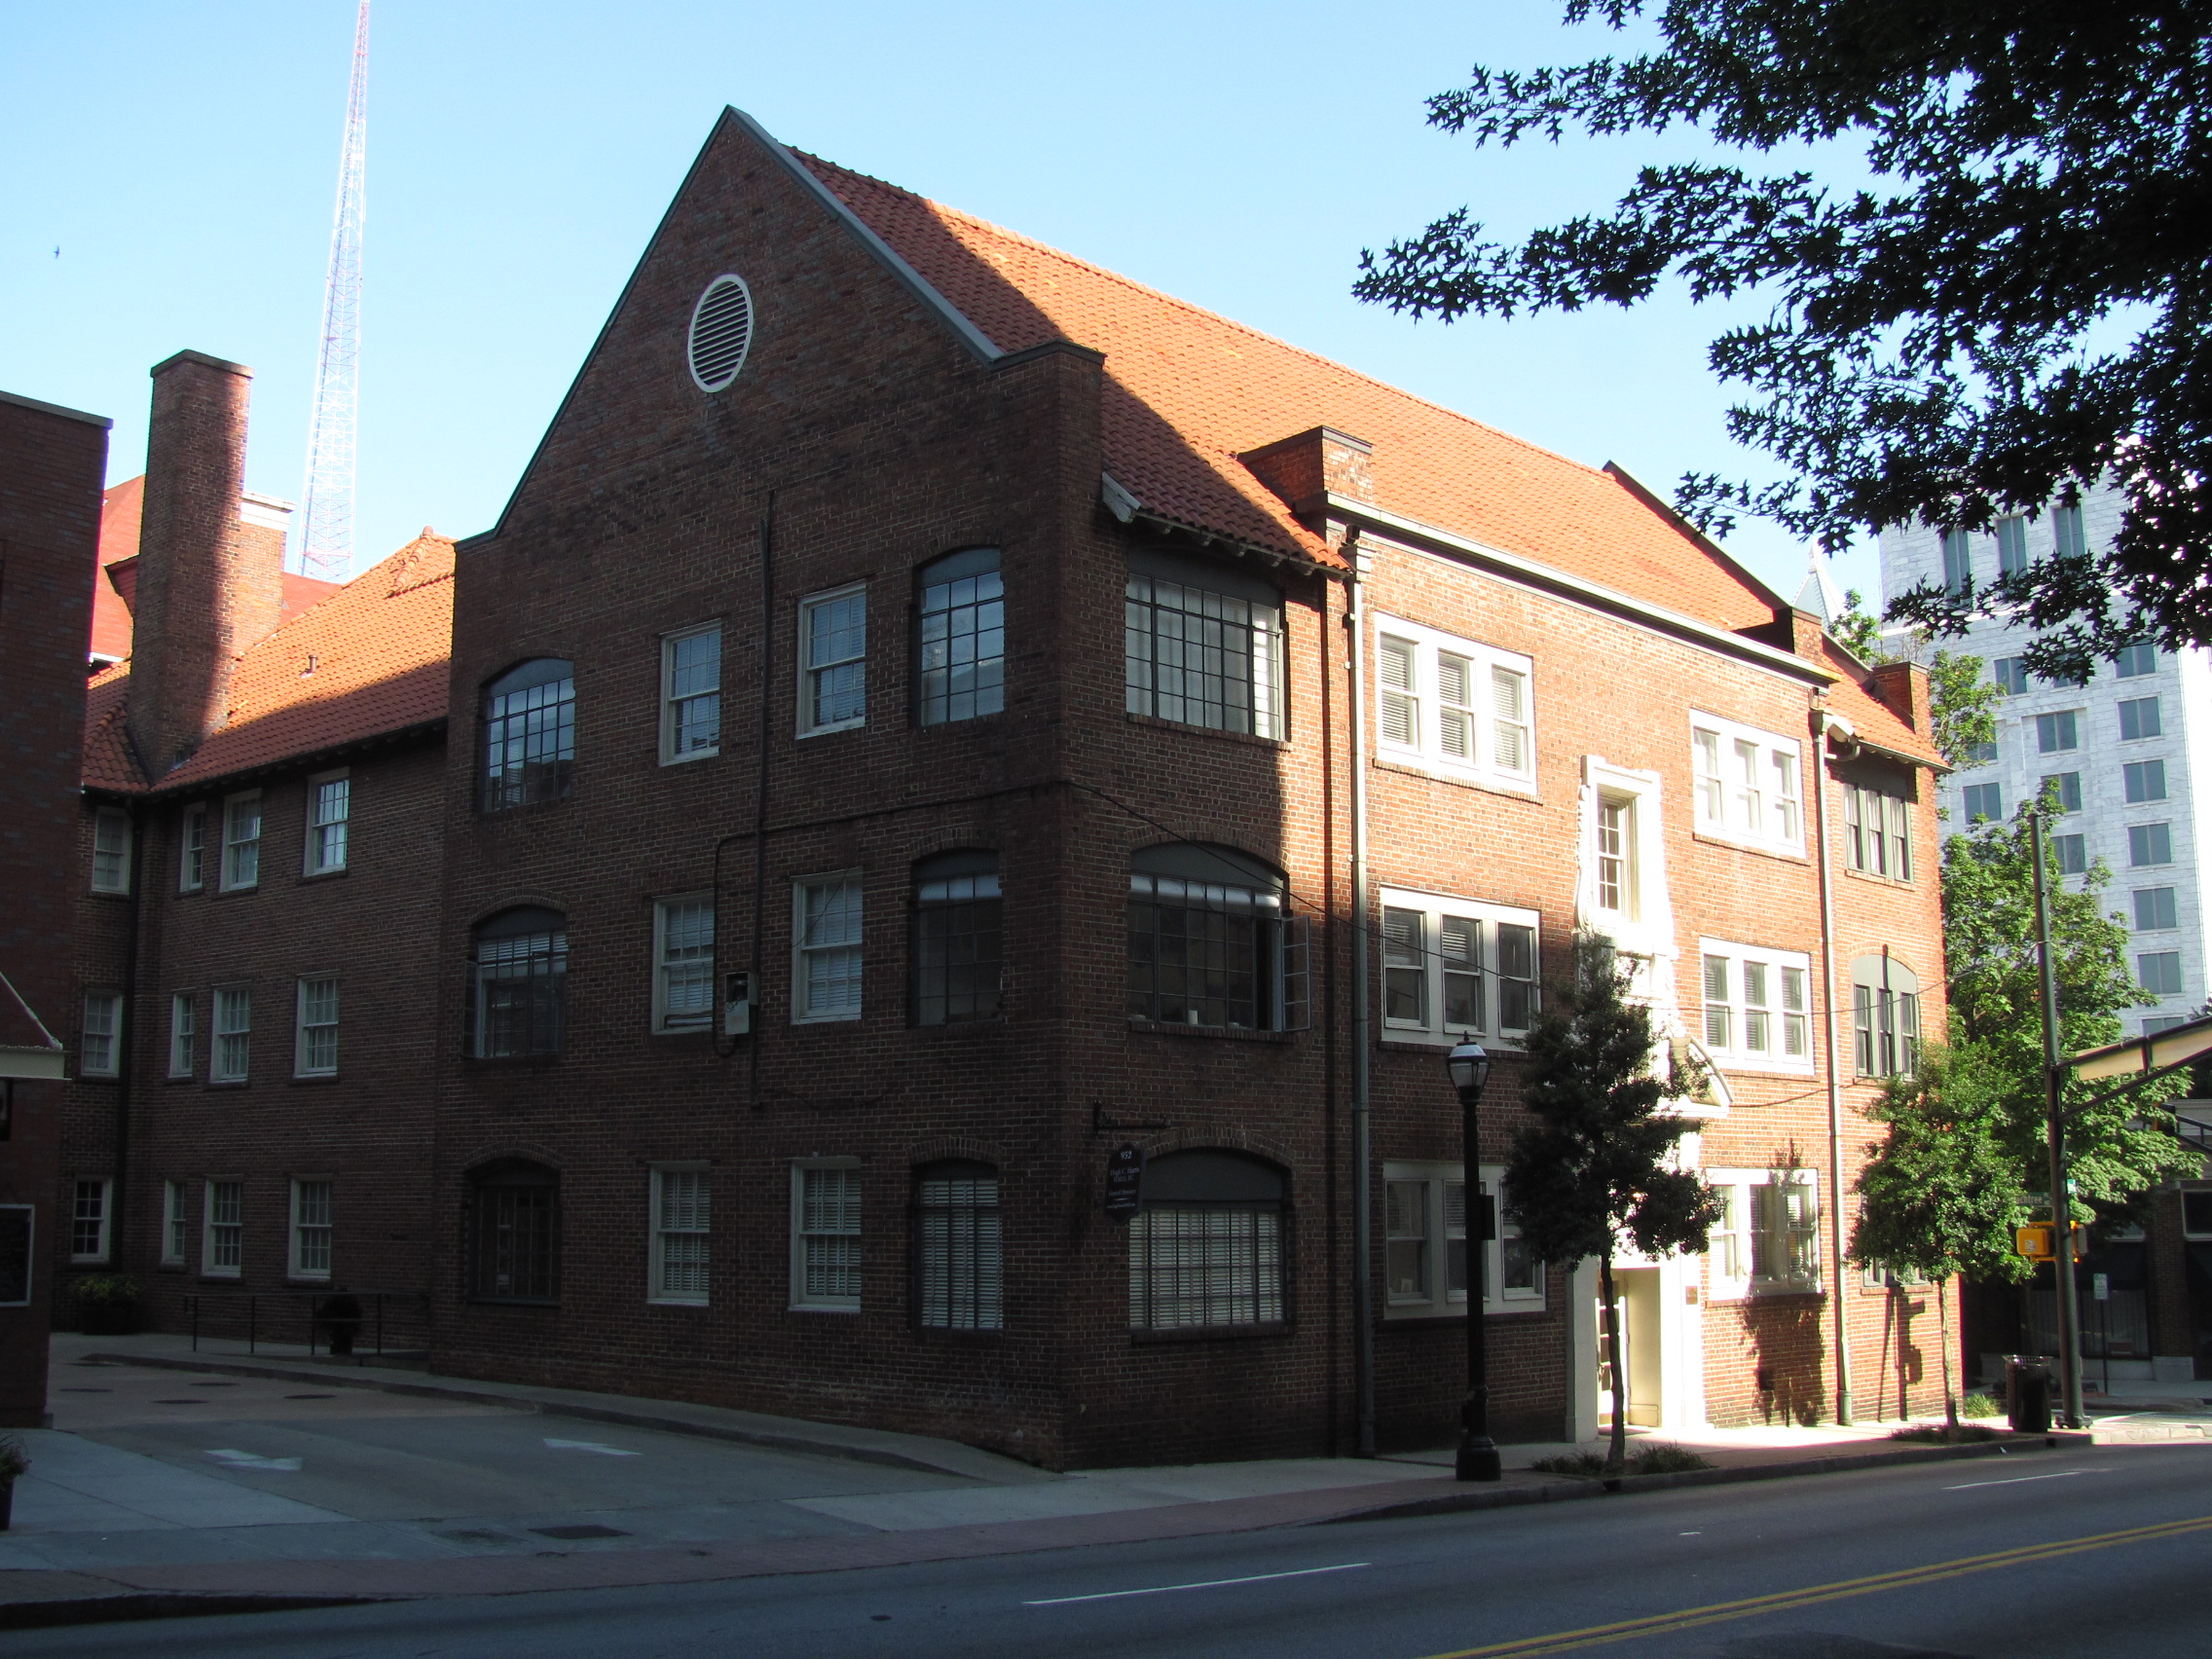 File:Phelan Court Apartments, Midtown Atlanta GA